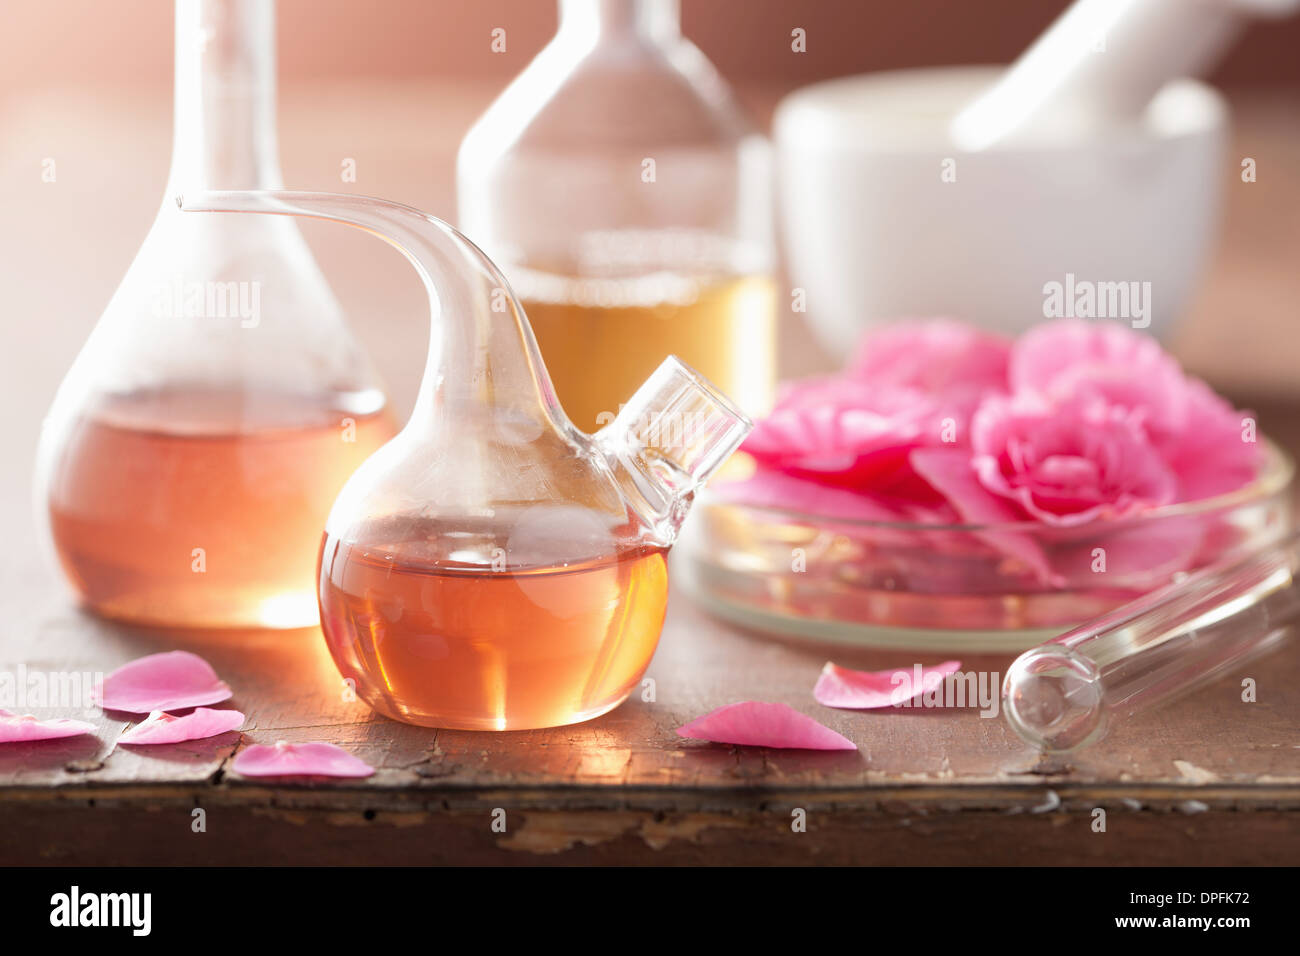 aromatherapy and alchemy with pink flowers - Stock Image